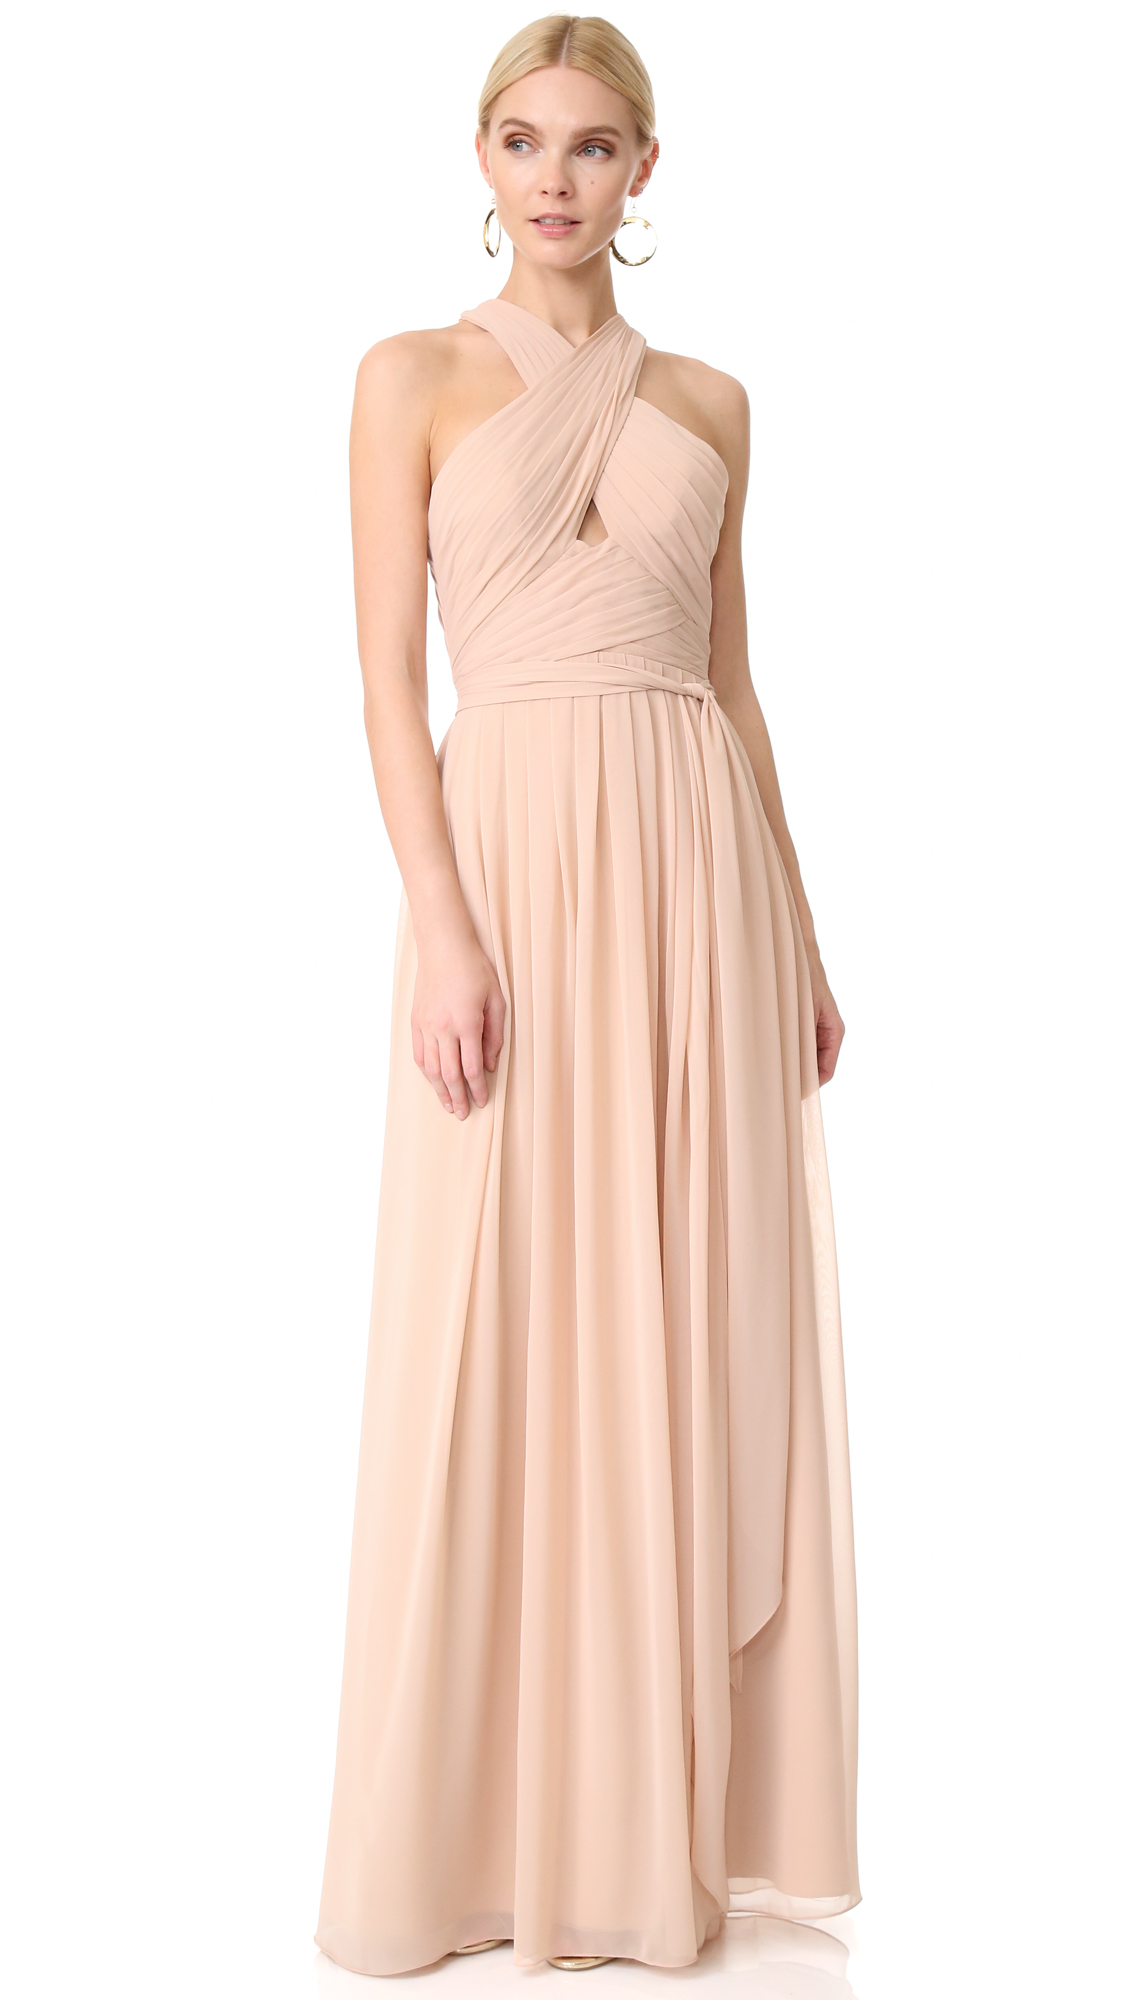 Monique Lhuillier Bridesmaids Halter Gown with Cutout - Bamboo